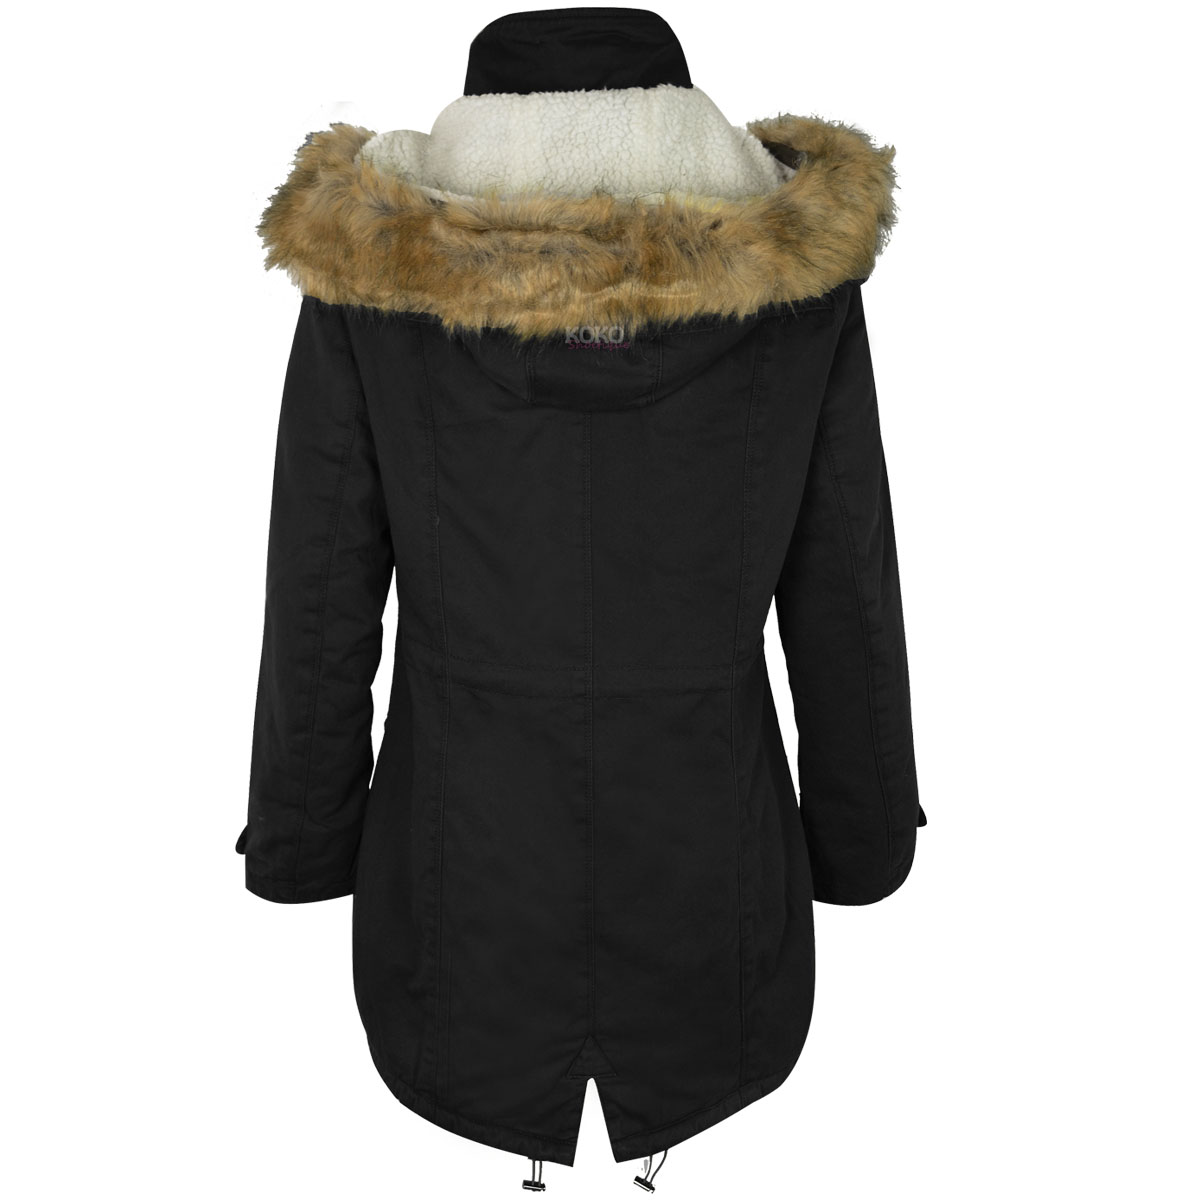 WOMENS LADIES WINTER LONG PARKA COAT WARM FLEECE LINED ...